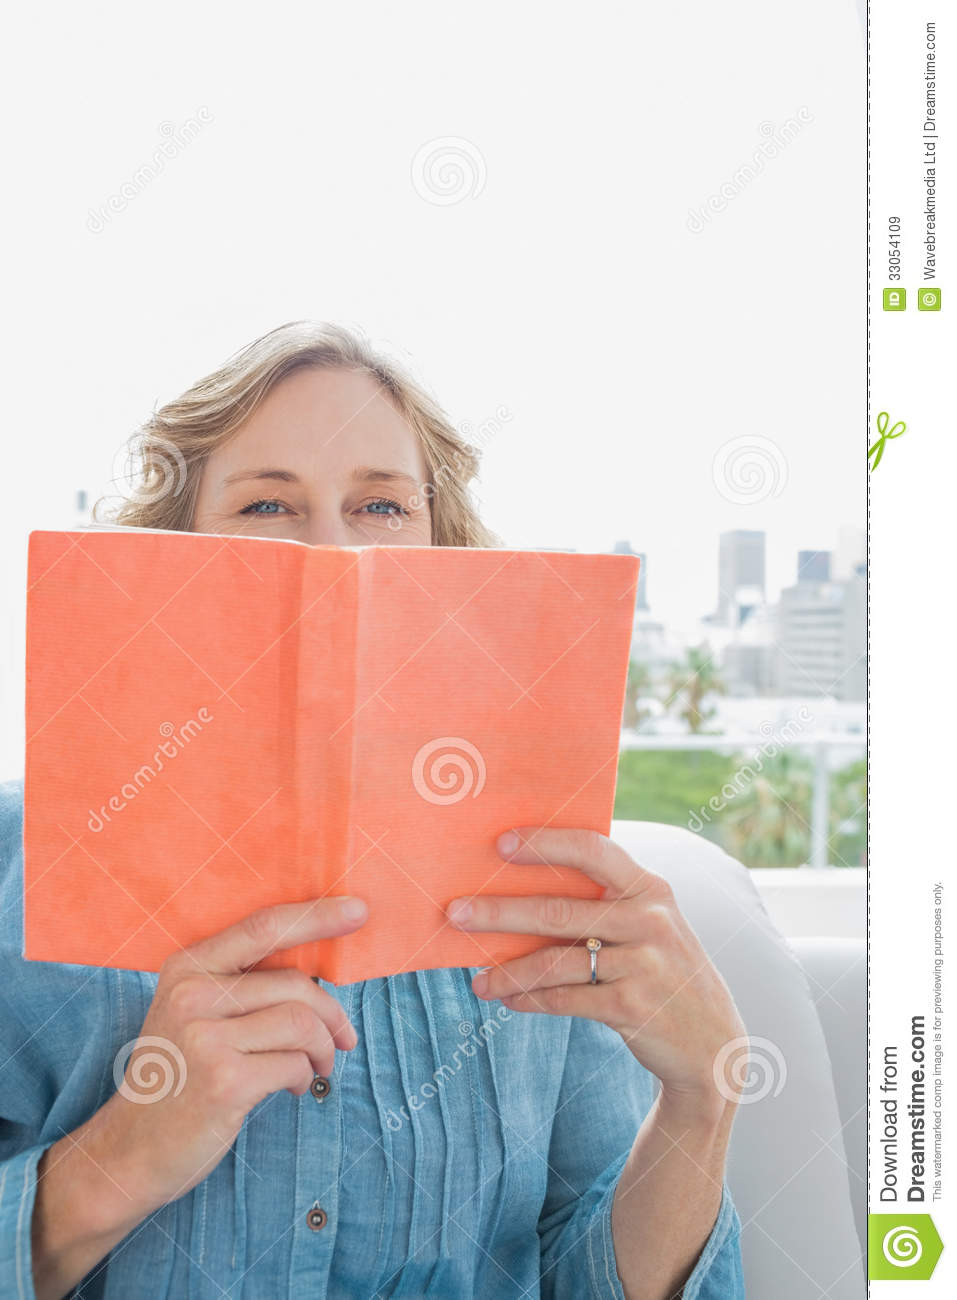 Book Covering Face : Woman sitting on her couch covering face with orange book